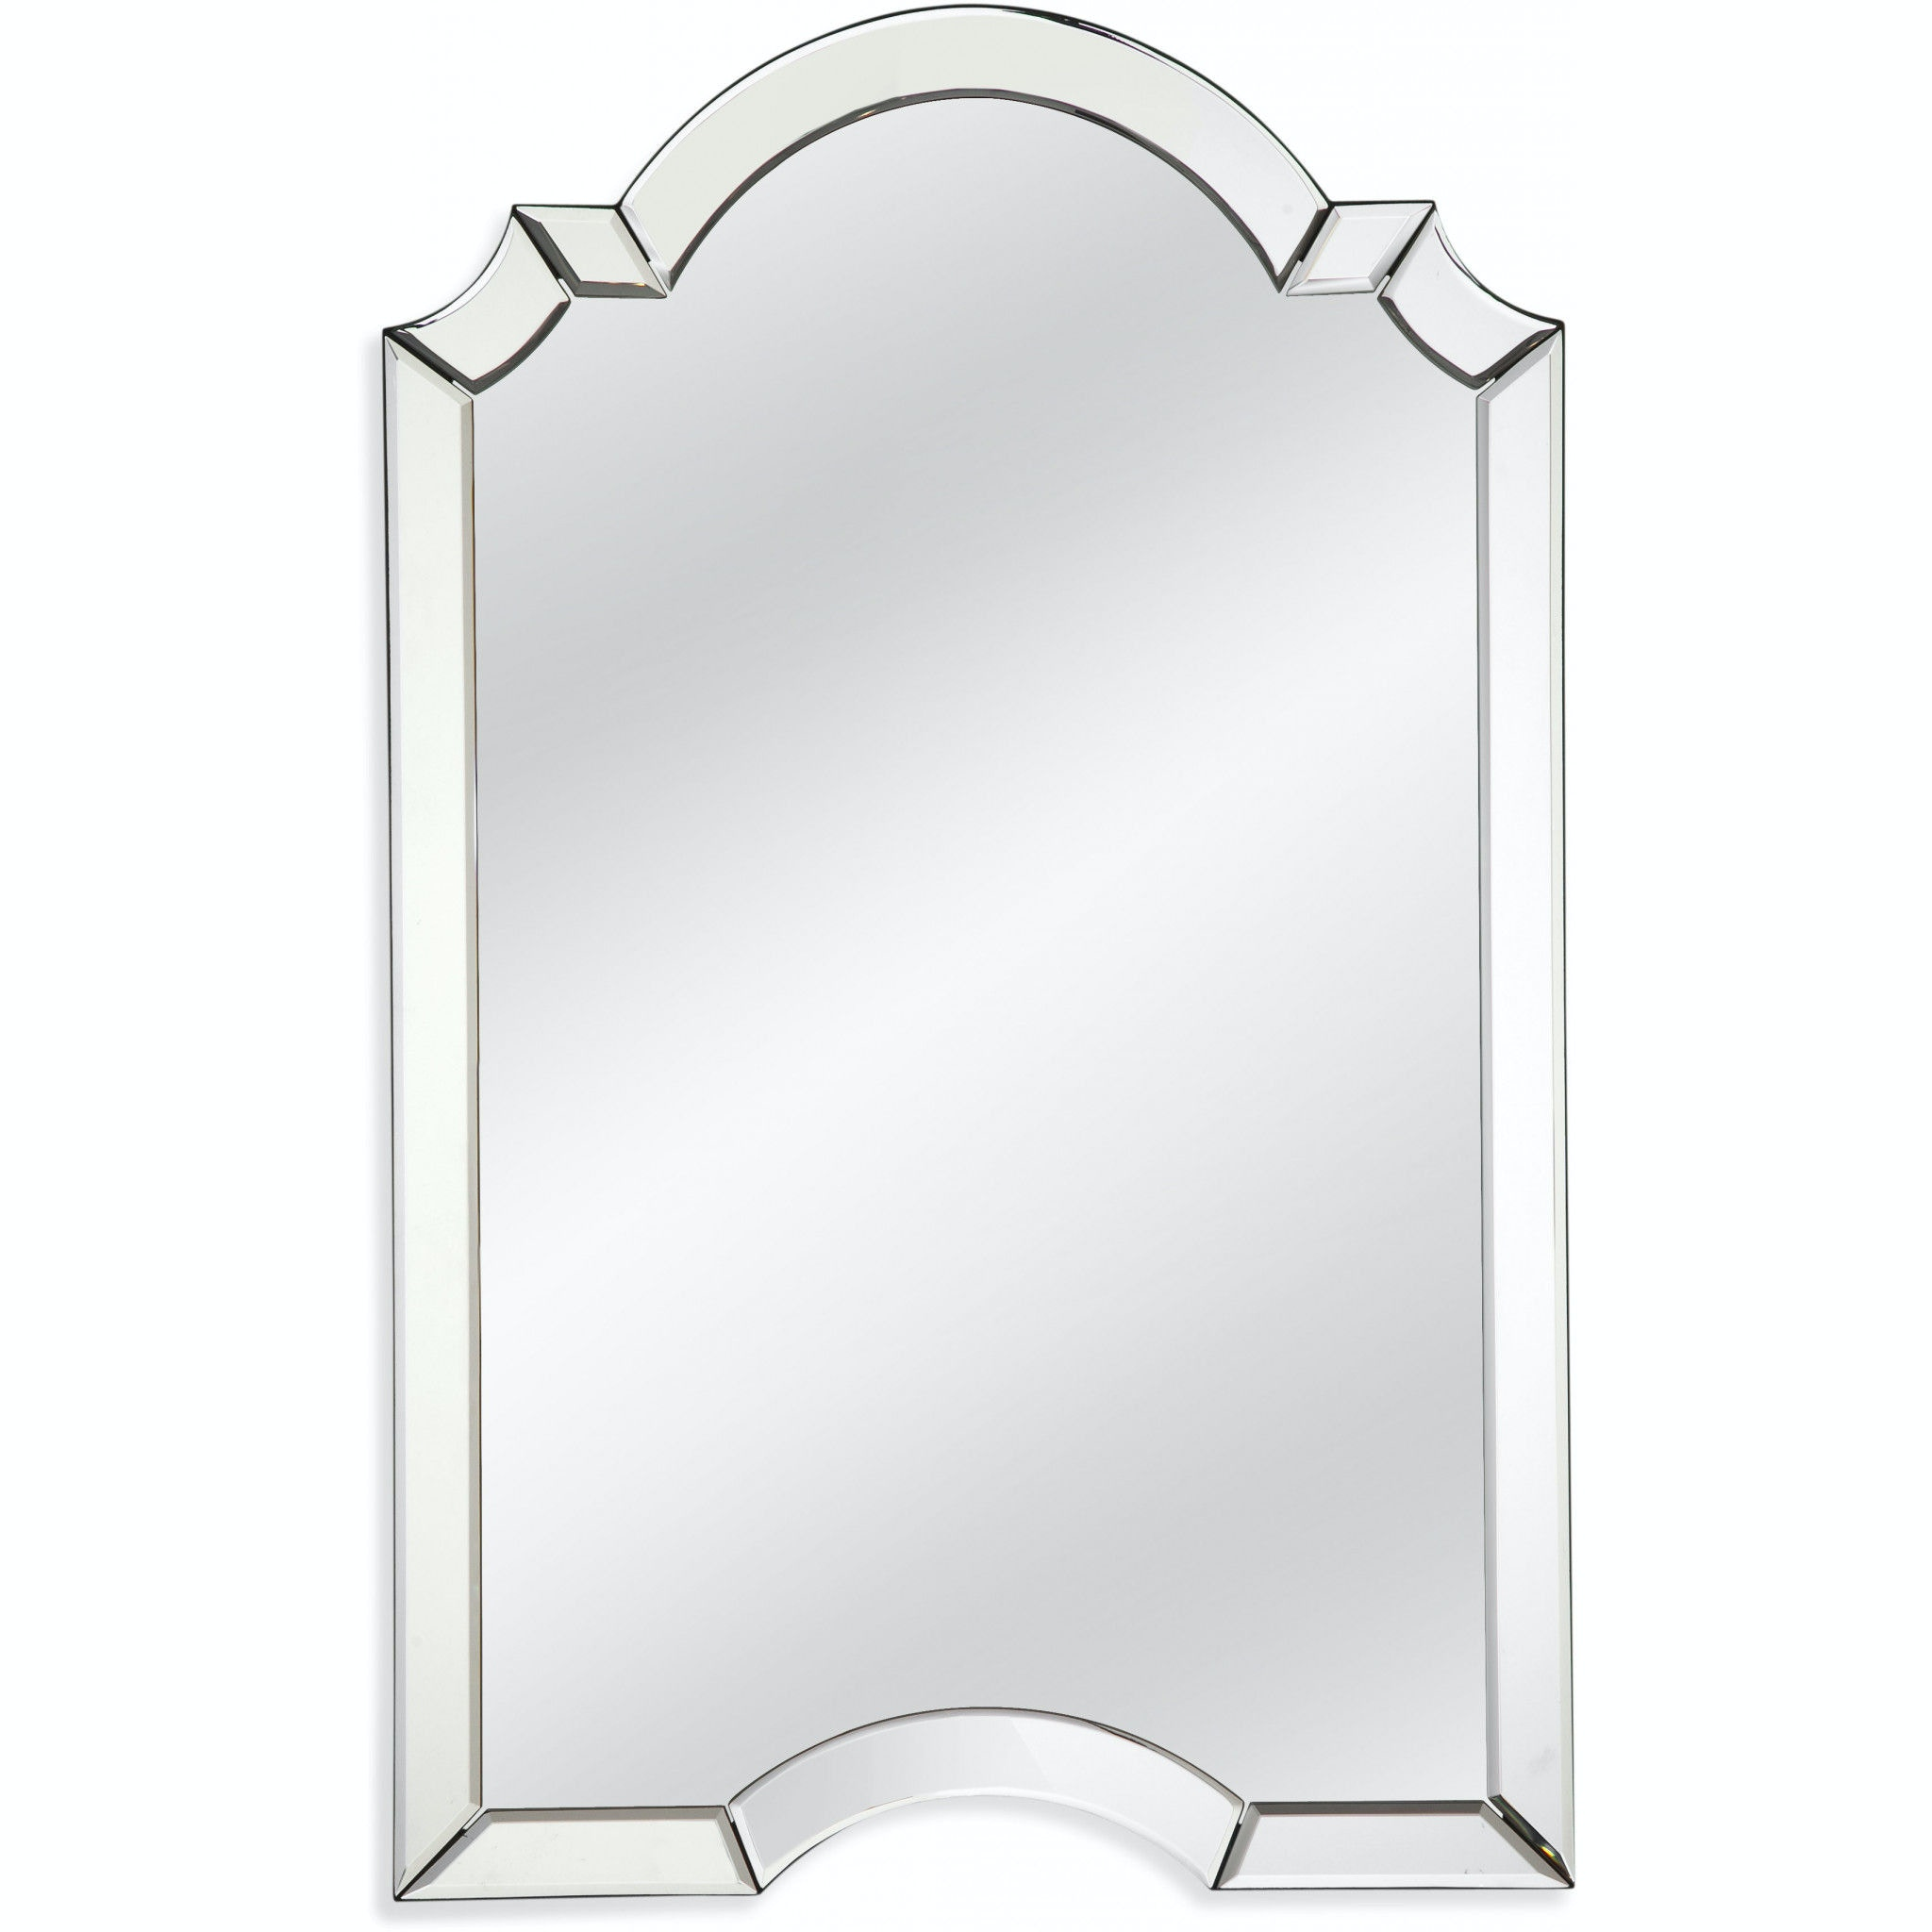 Great Bassett Mirror Company Emerson Wall Mirror M3675